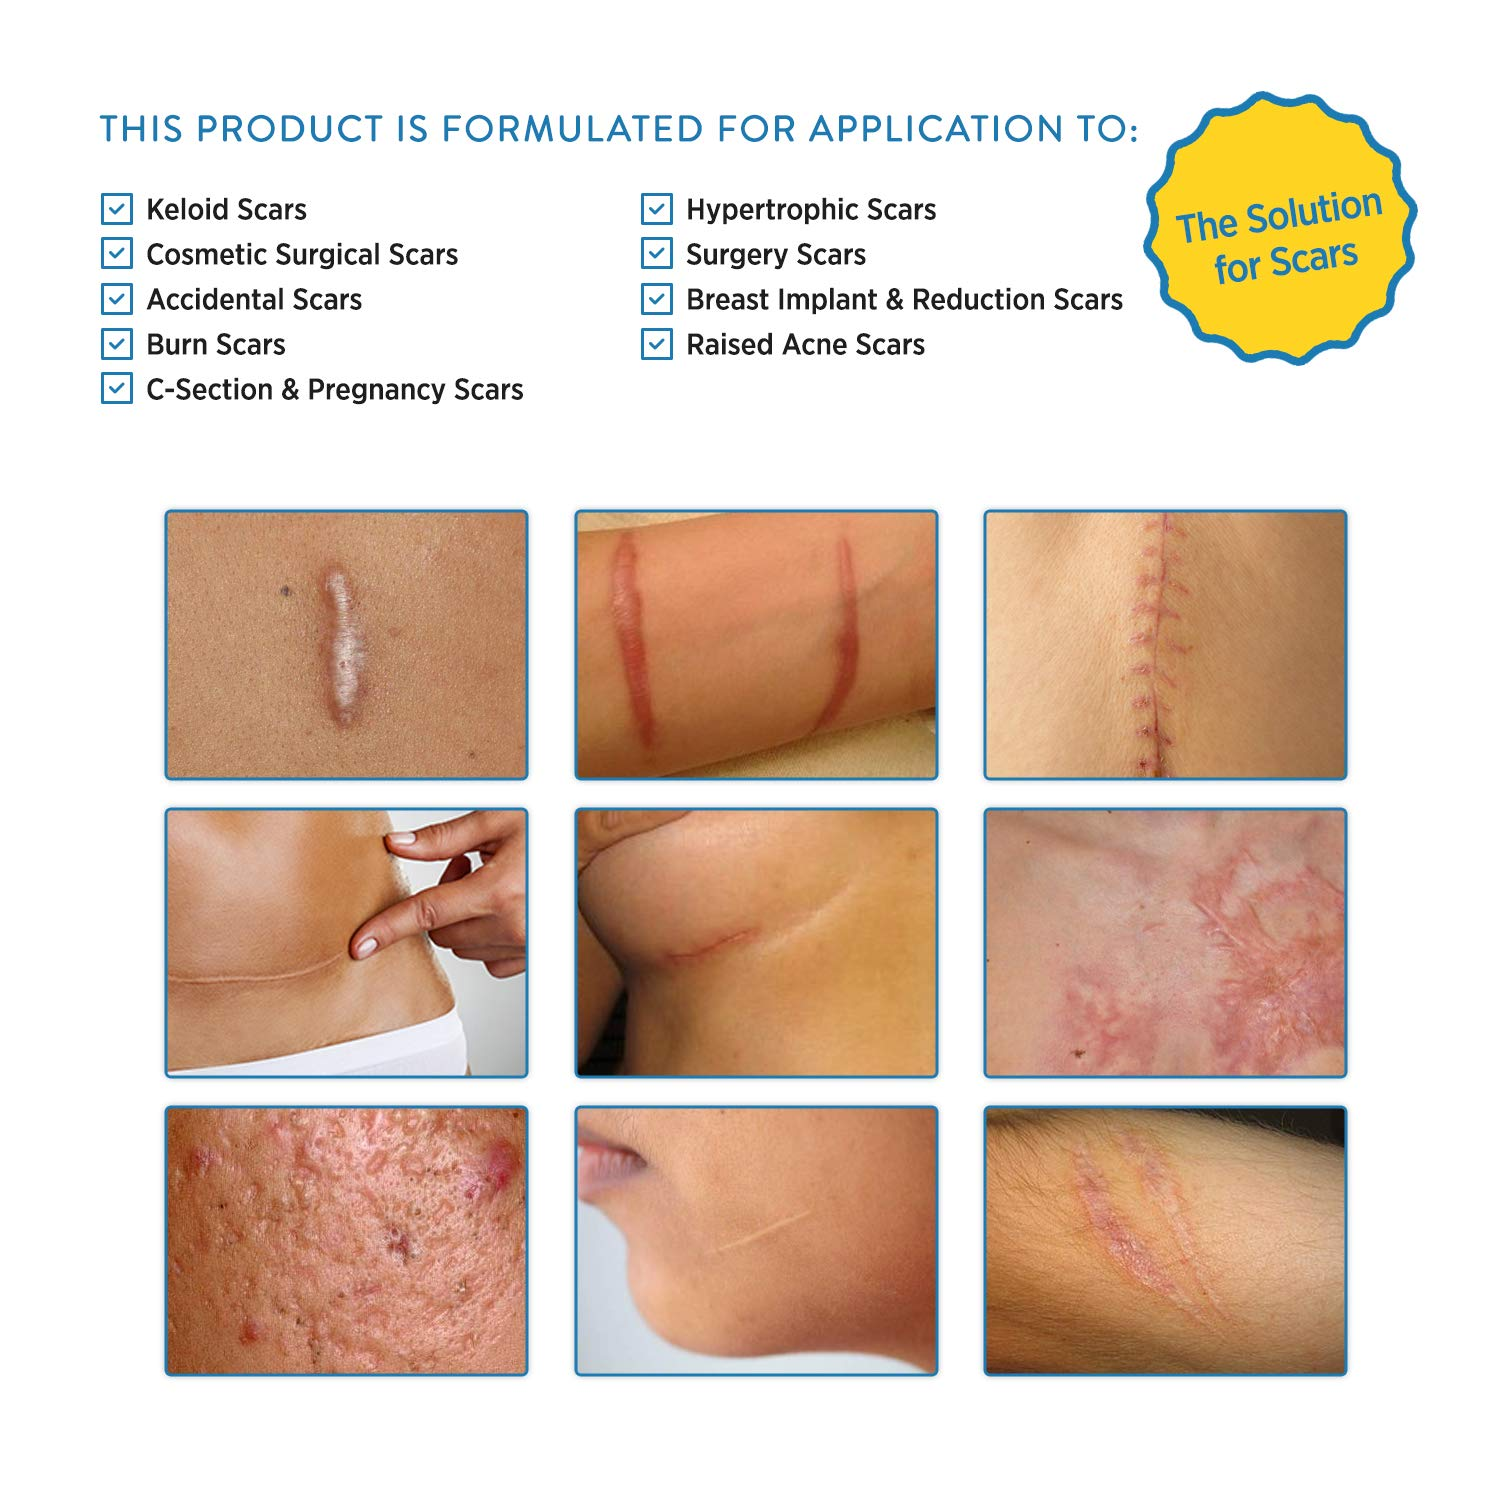 Aroamas, Silicone Scar Removal Sheets - for Keloid, C-Section,  Hypertrophic, Surgical Scars and More